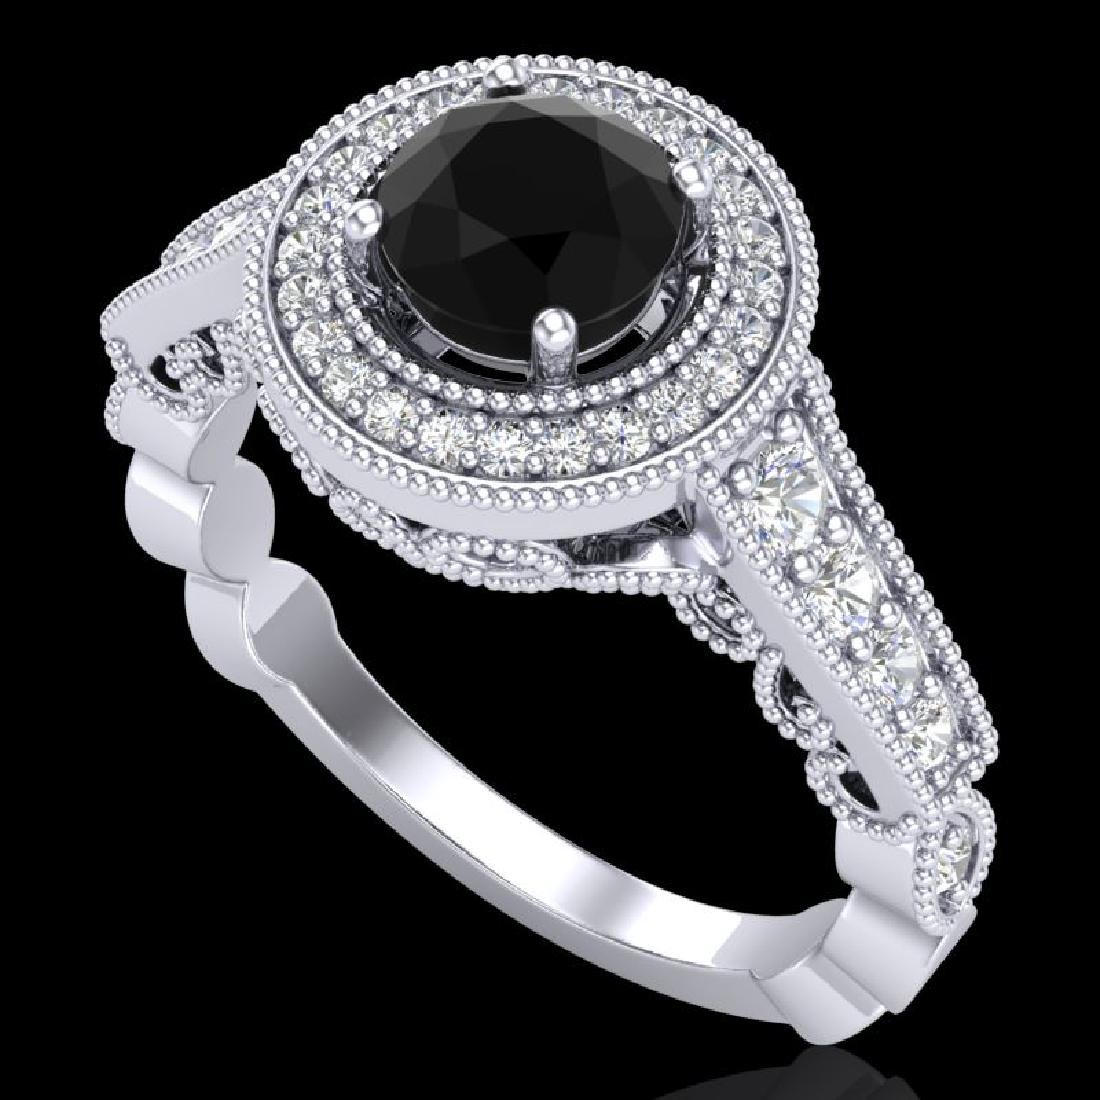 1.12 CTW Fancy Black Diamond Solitaire Engagement Art